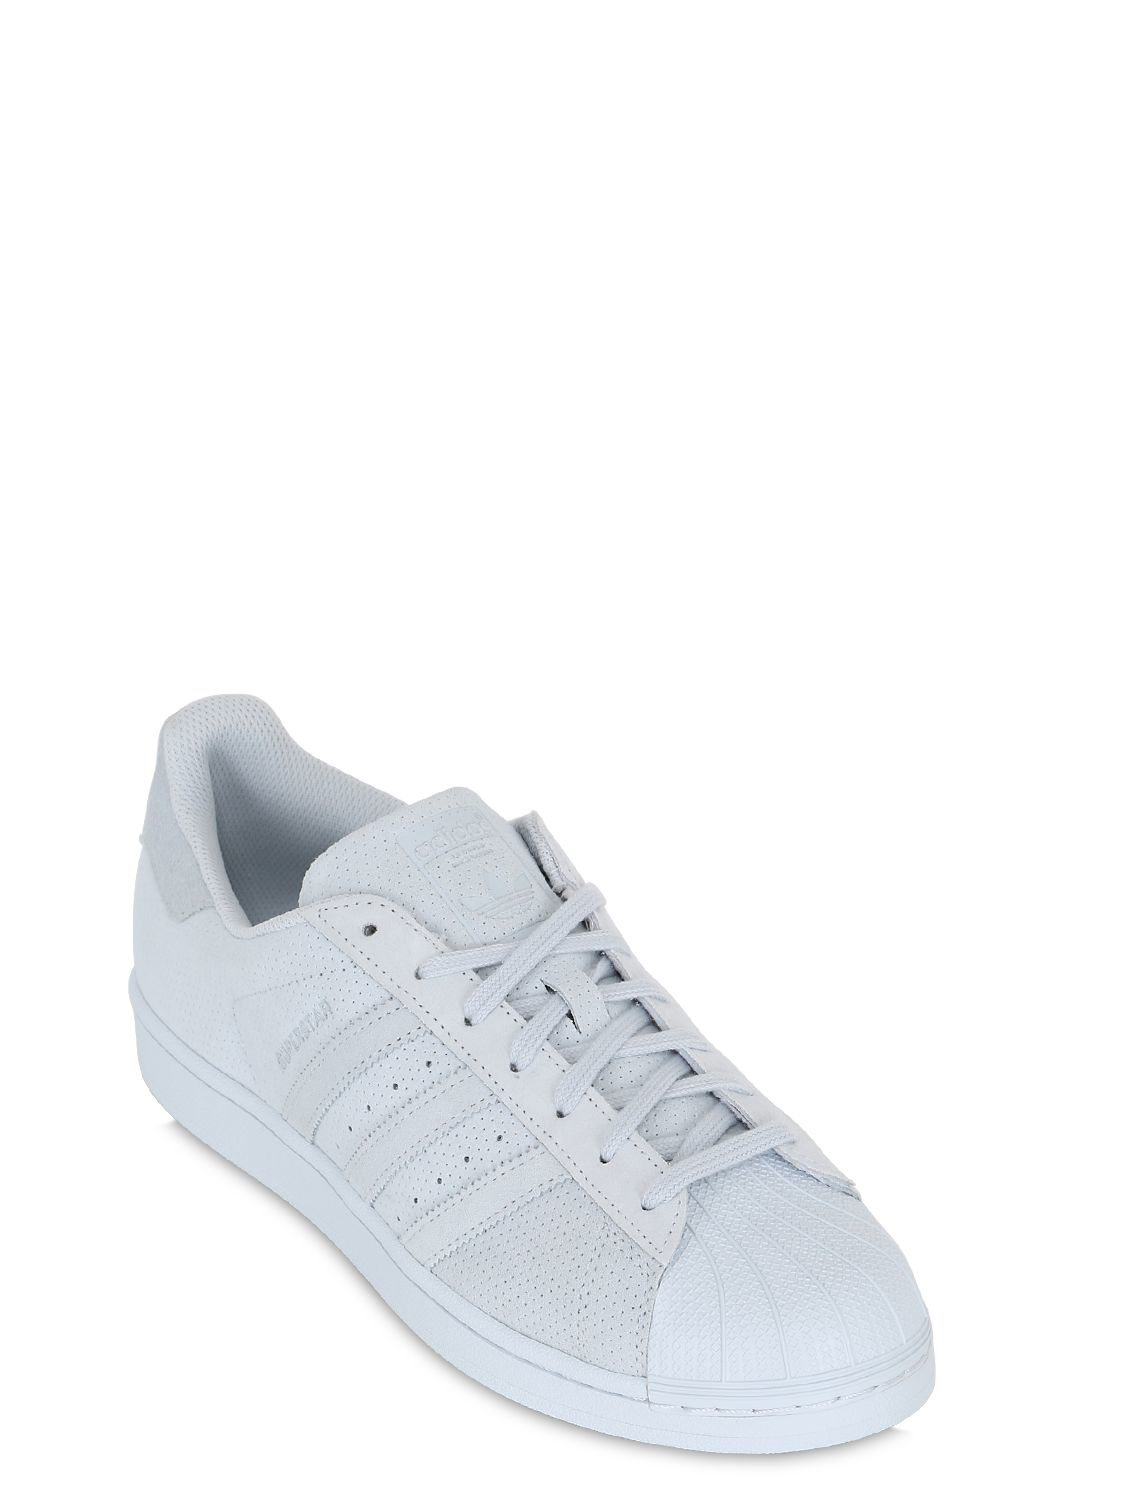 adidas Superstar White Onix Gold Metallic DTLR